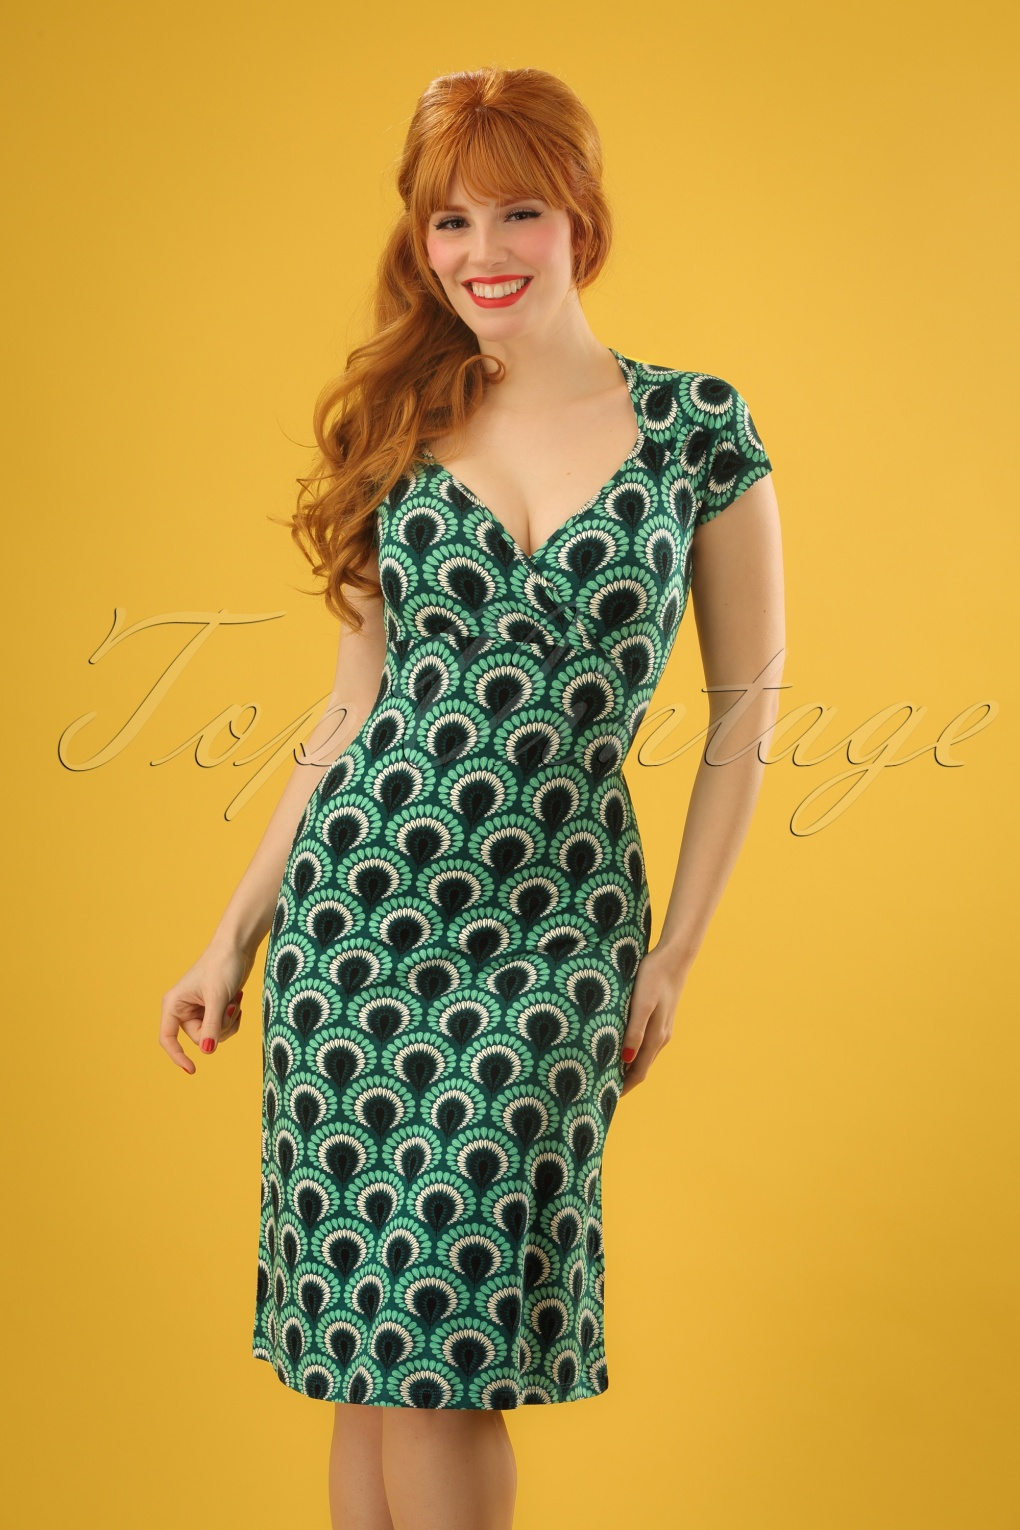 60s Plus Size Retro Dresses, Clothing, Costumes | 70s Dresses 60s Gina Peacock Dress in Rock Green £83.80 AT vintagedancer.com